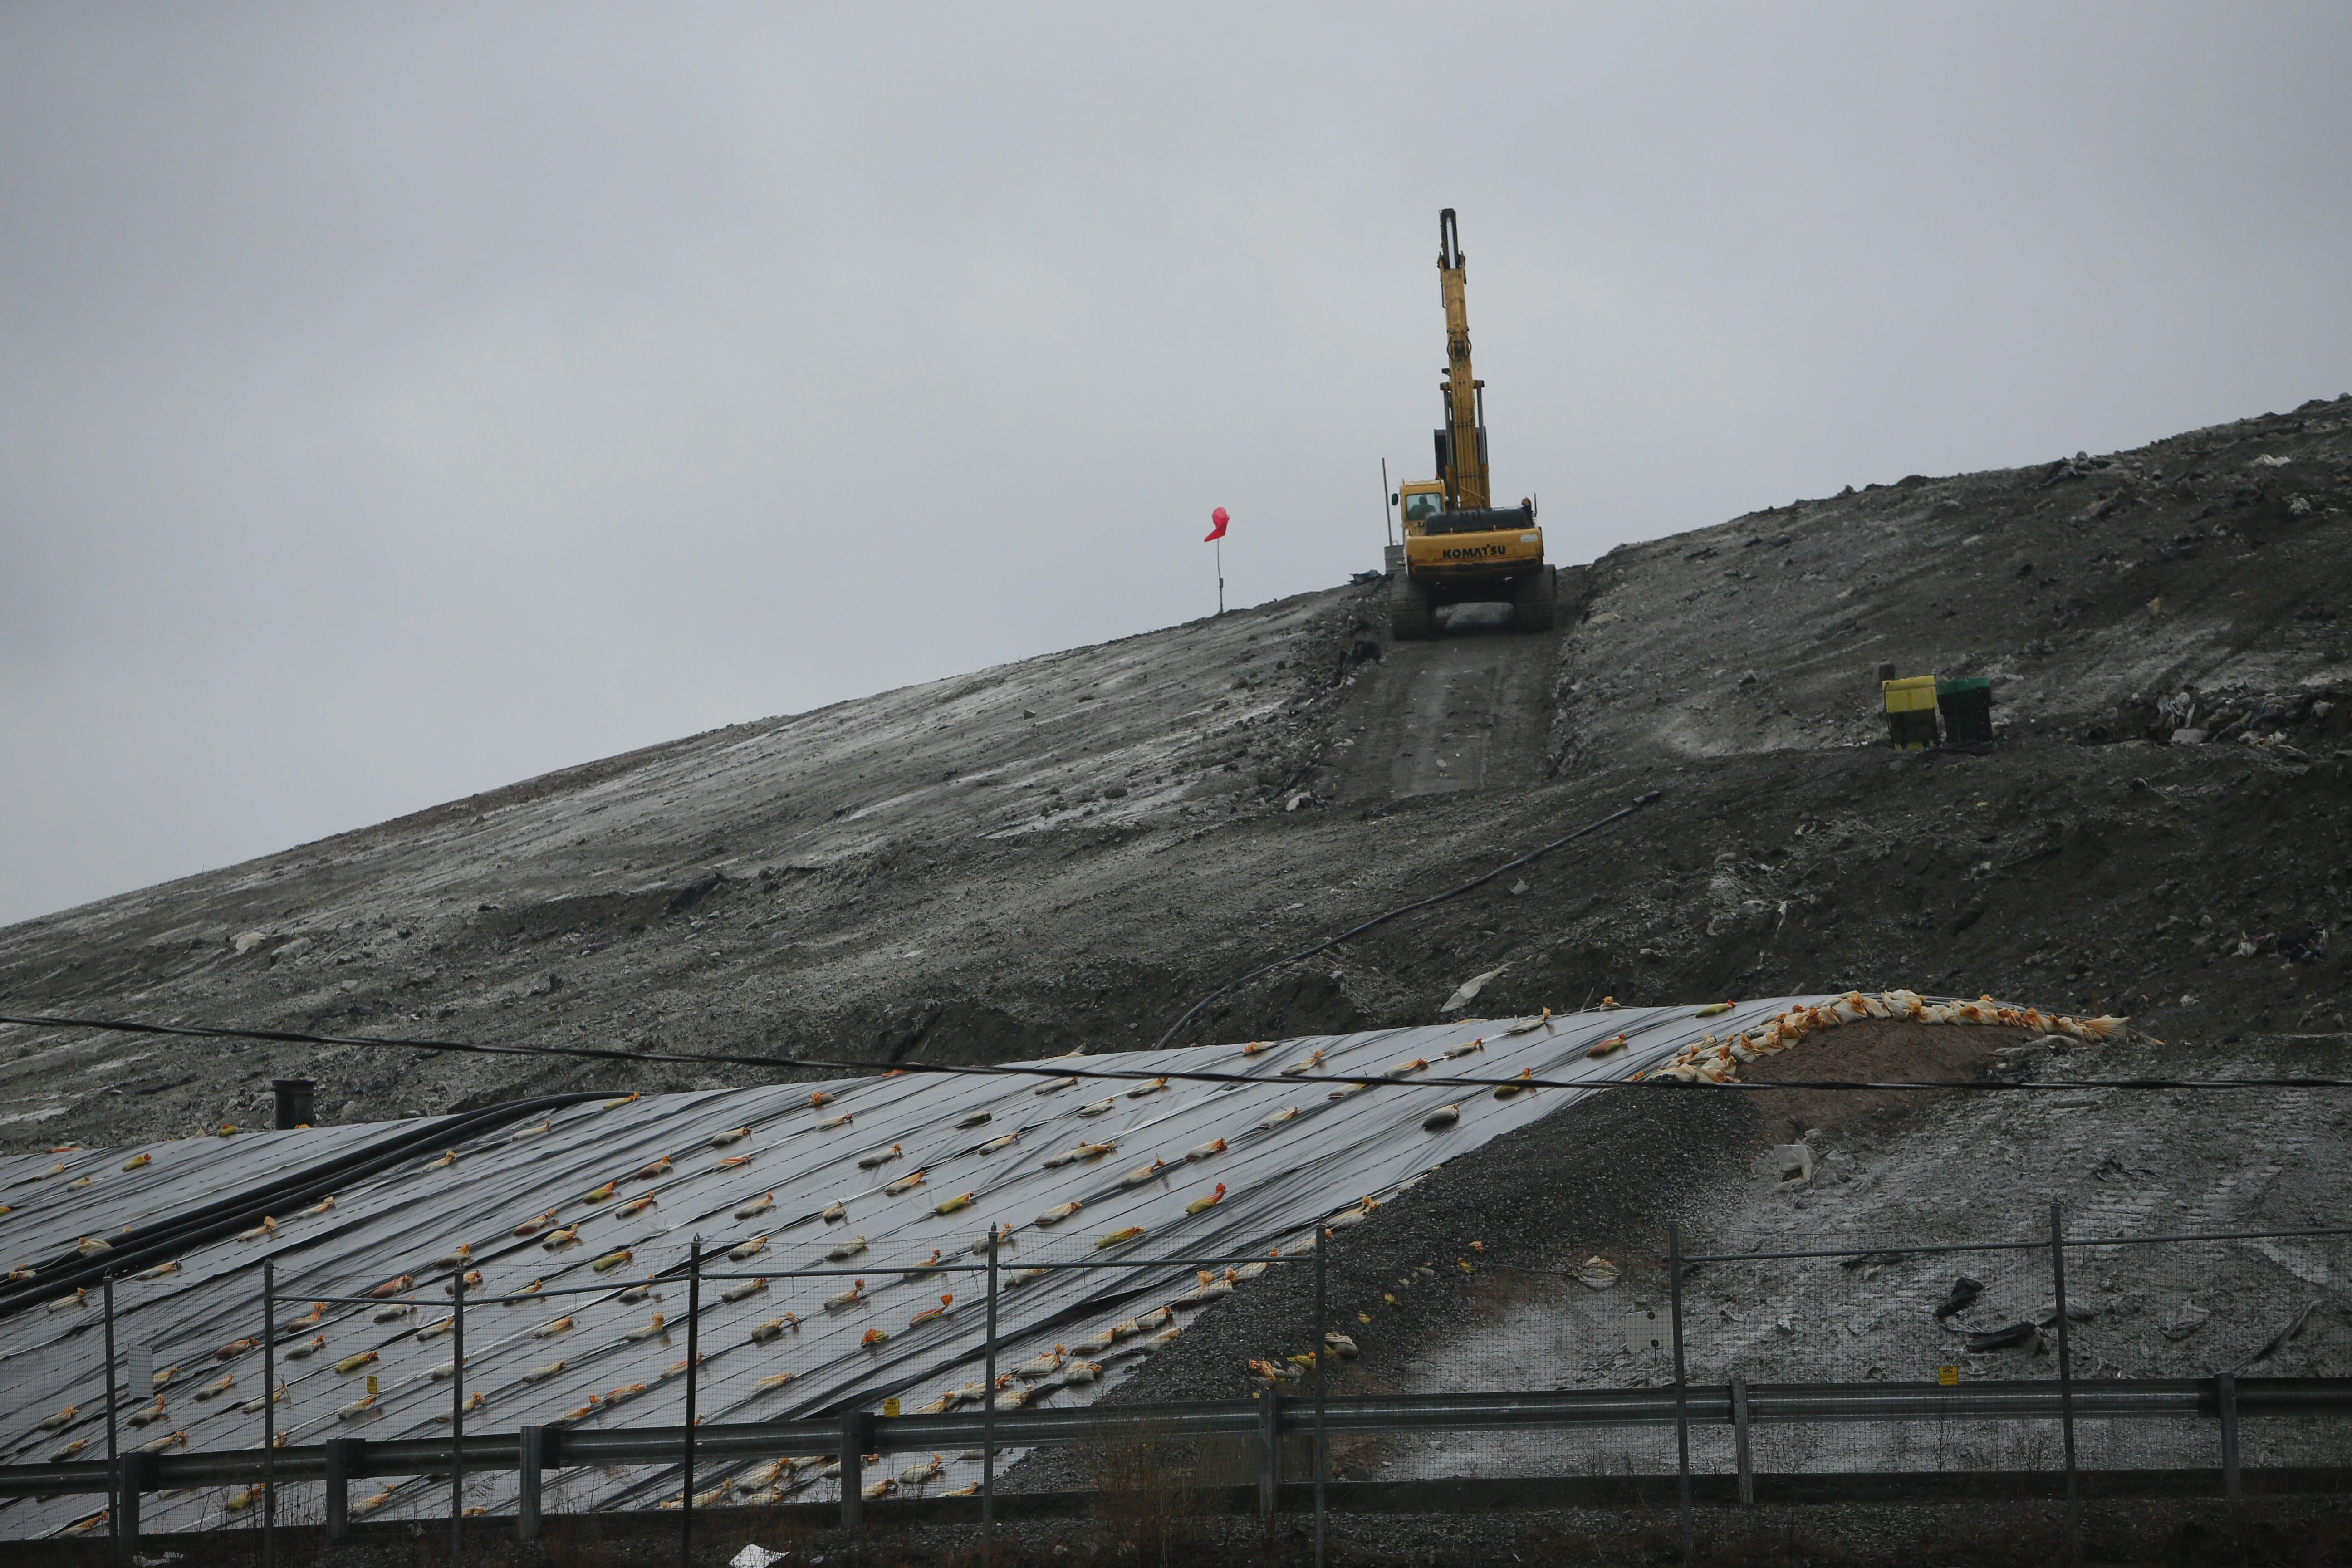 Niagara County and Town of Lewiston have spent $300,000 on lawyer to fight CWM landfill growth, a dispute in which a state board could play a major role.